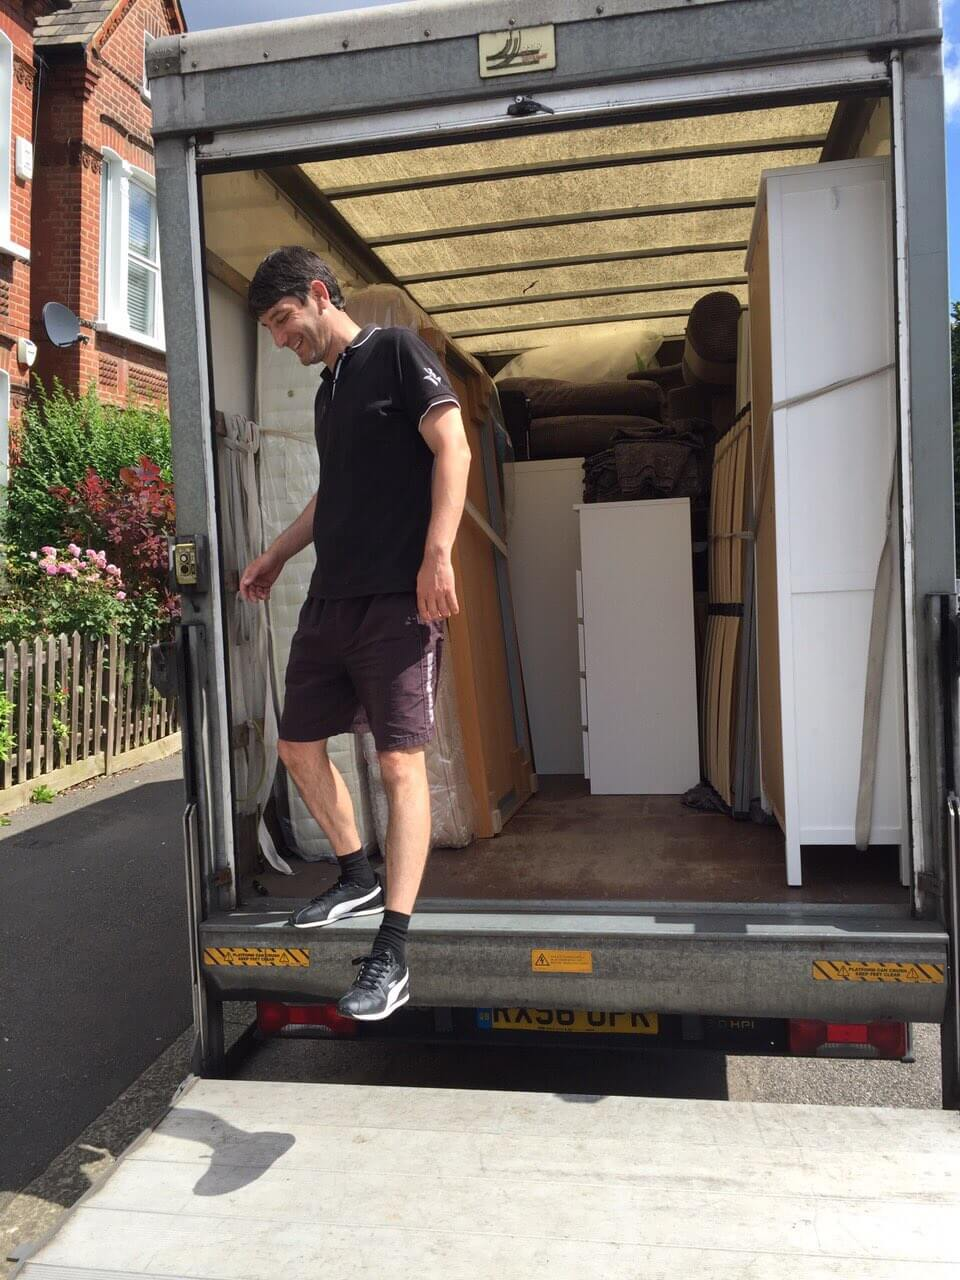 van removals Paddington